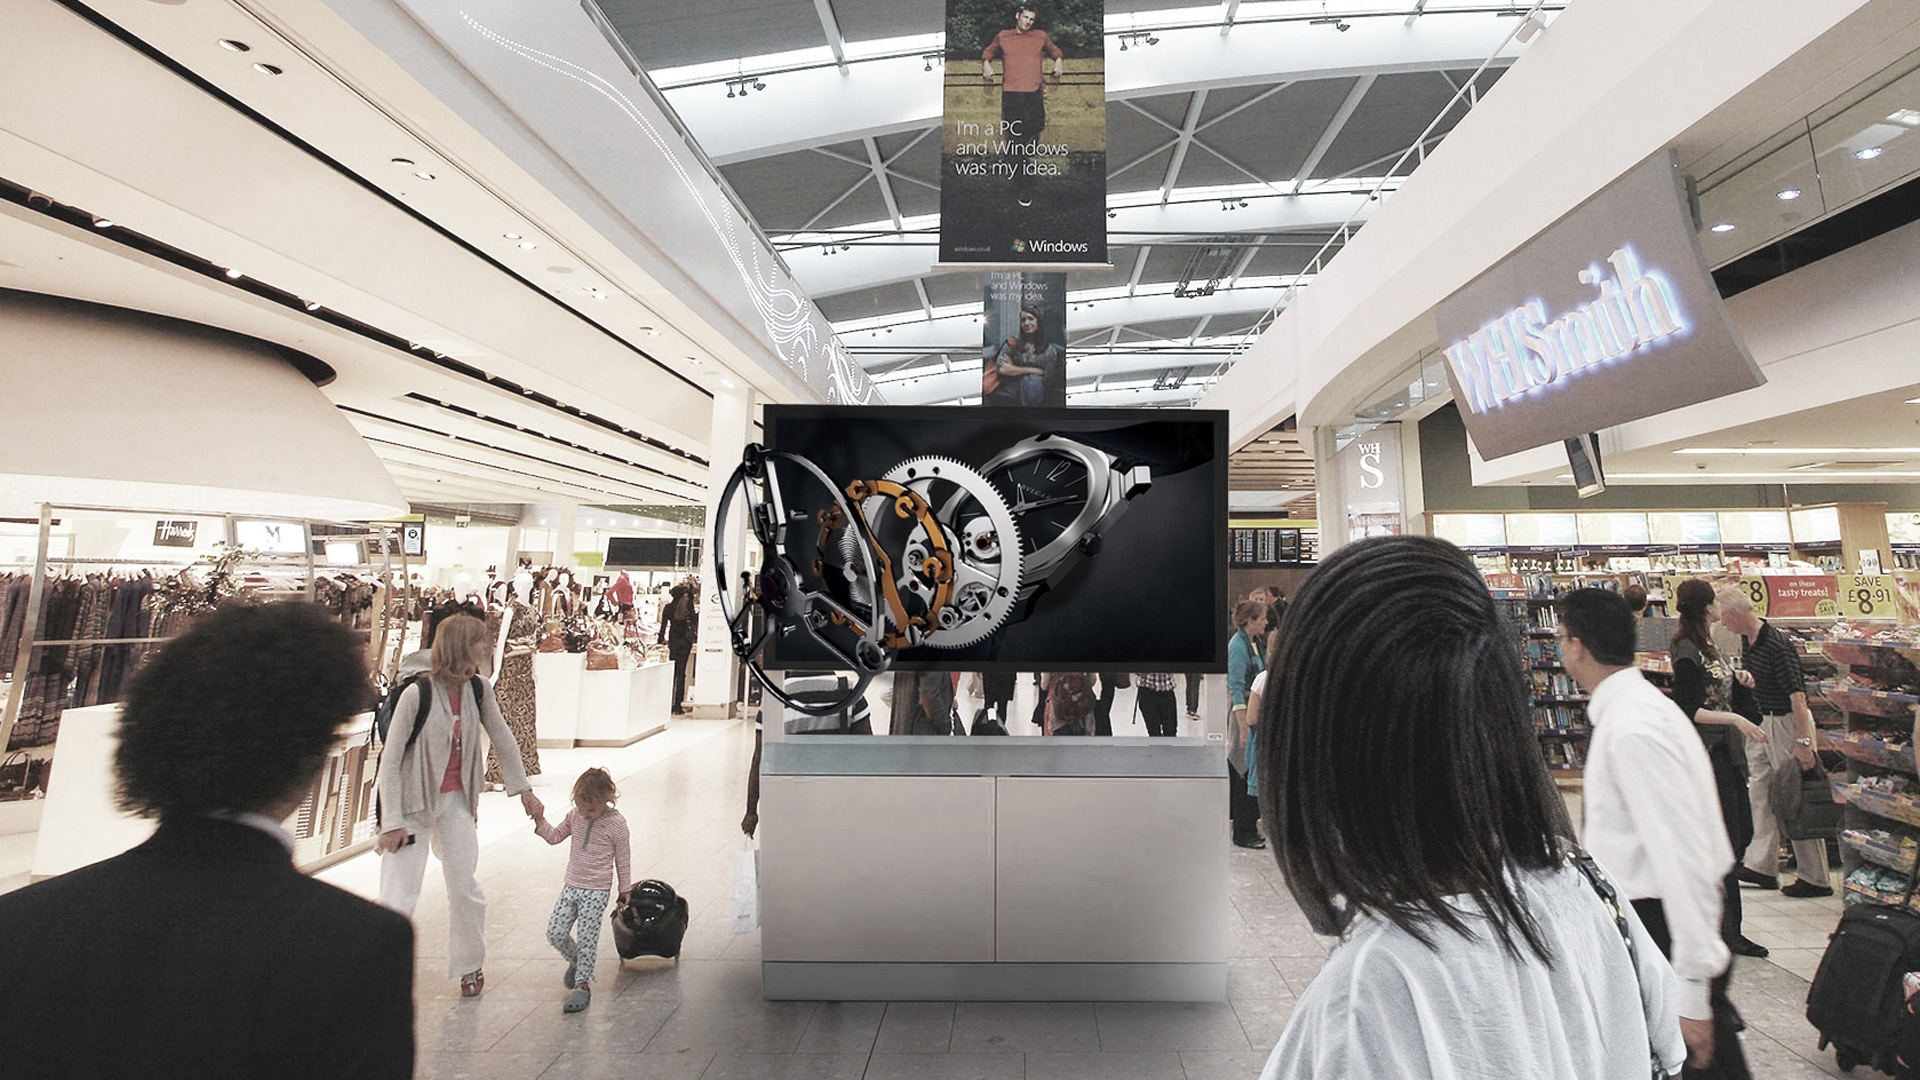 Mall_Mockup_Watch_1920x1080